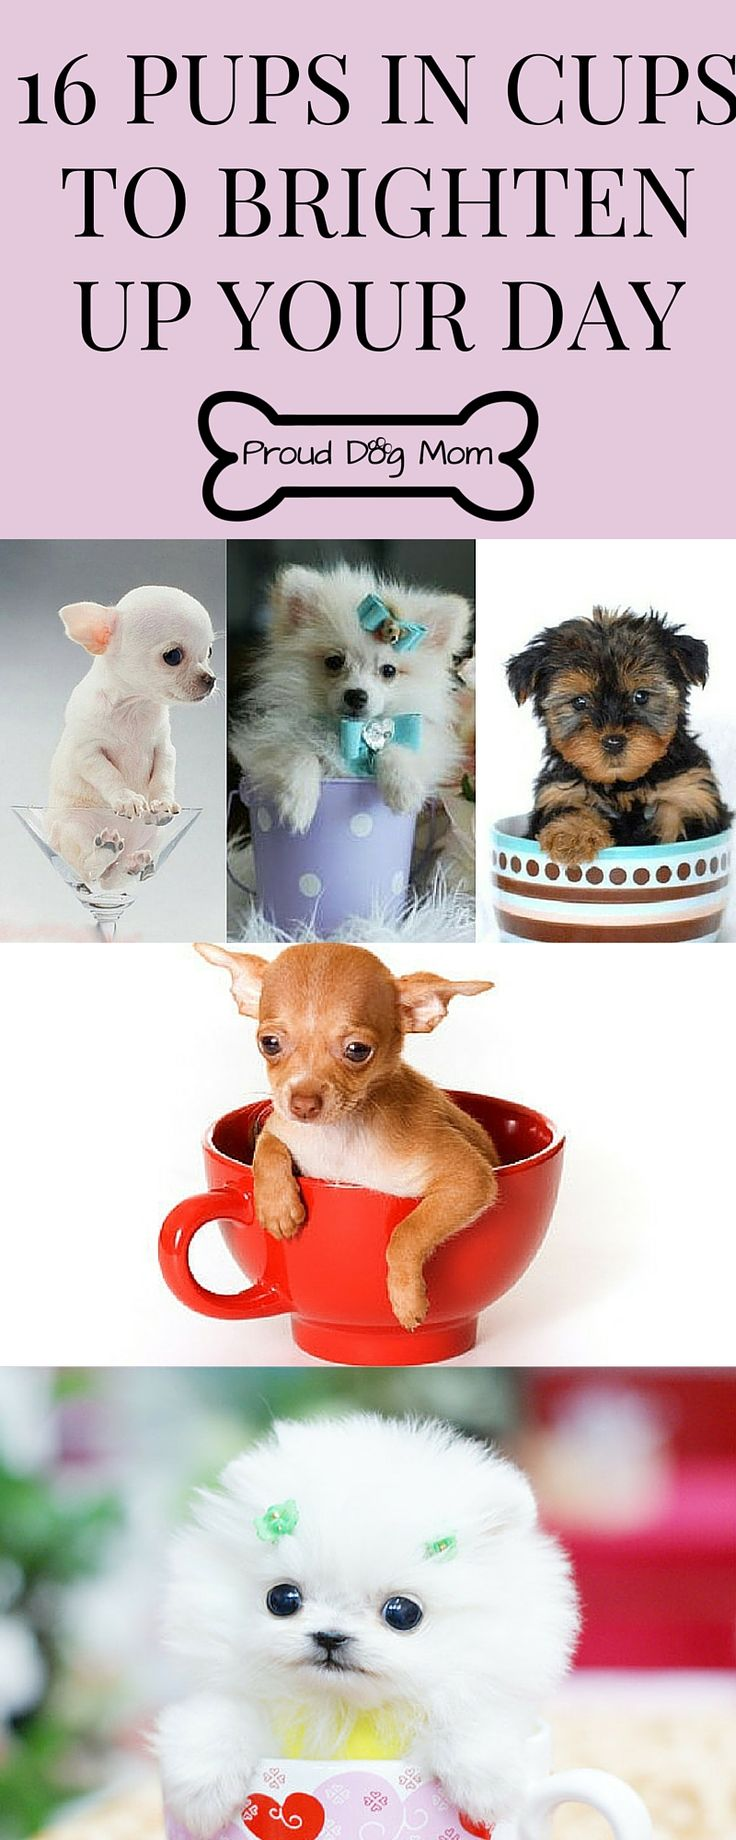 83 best images about Cute Dogs on Pinterest | Tiny puppies ...